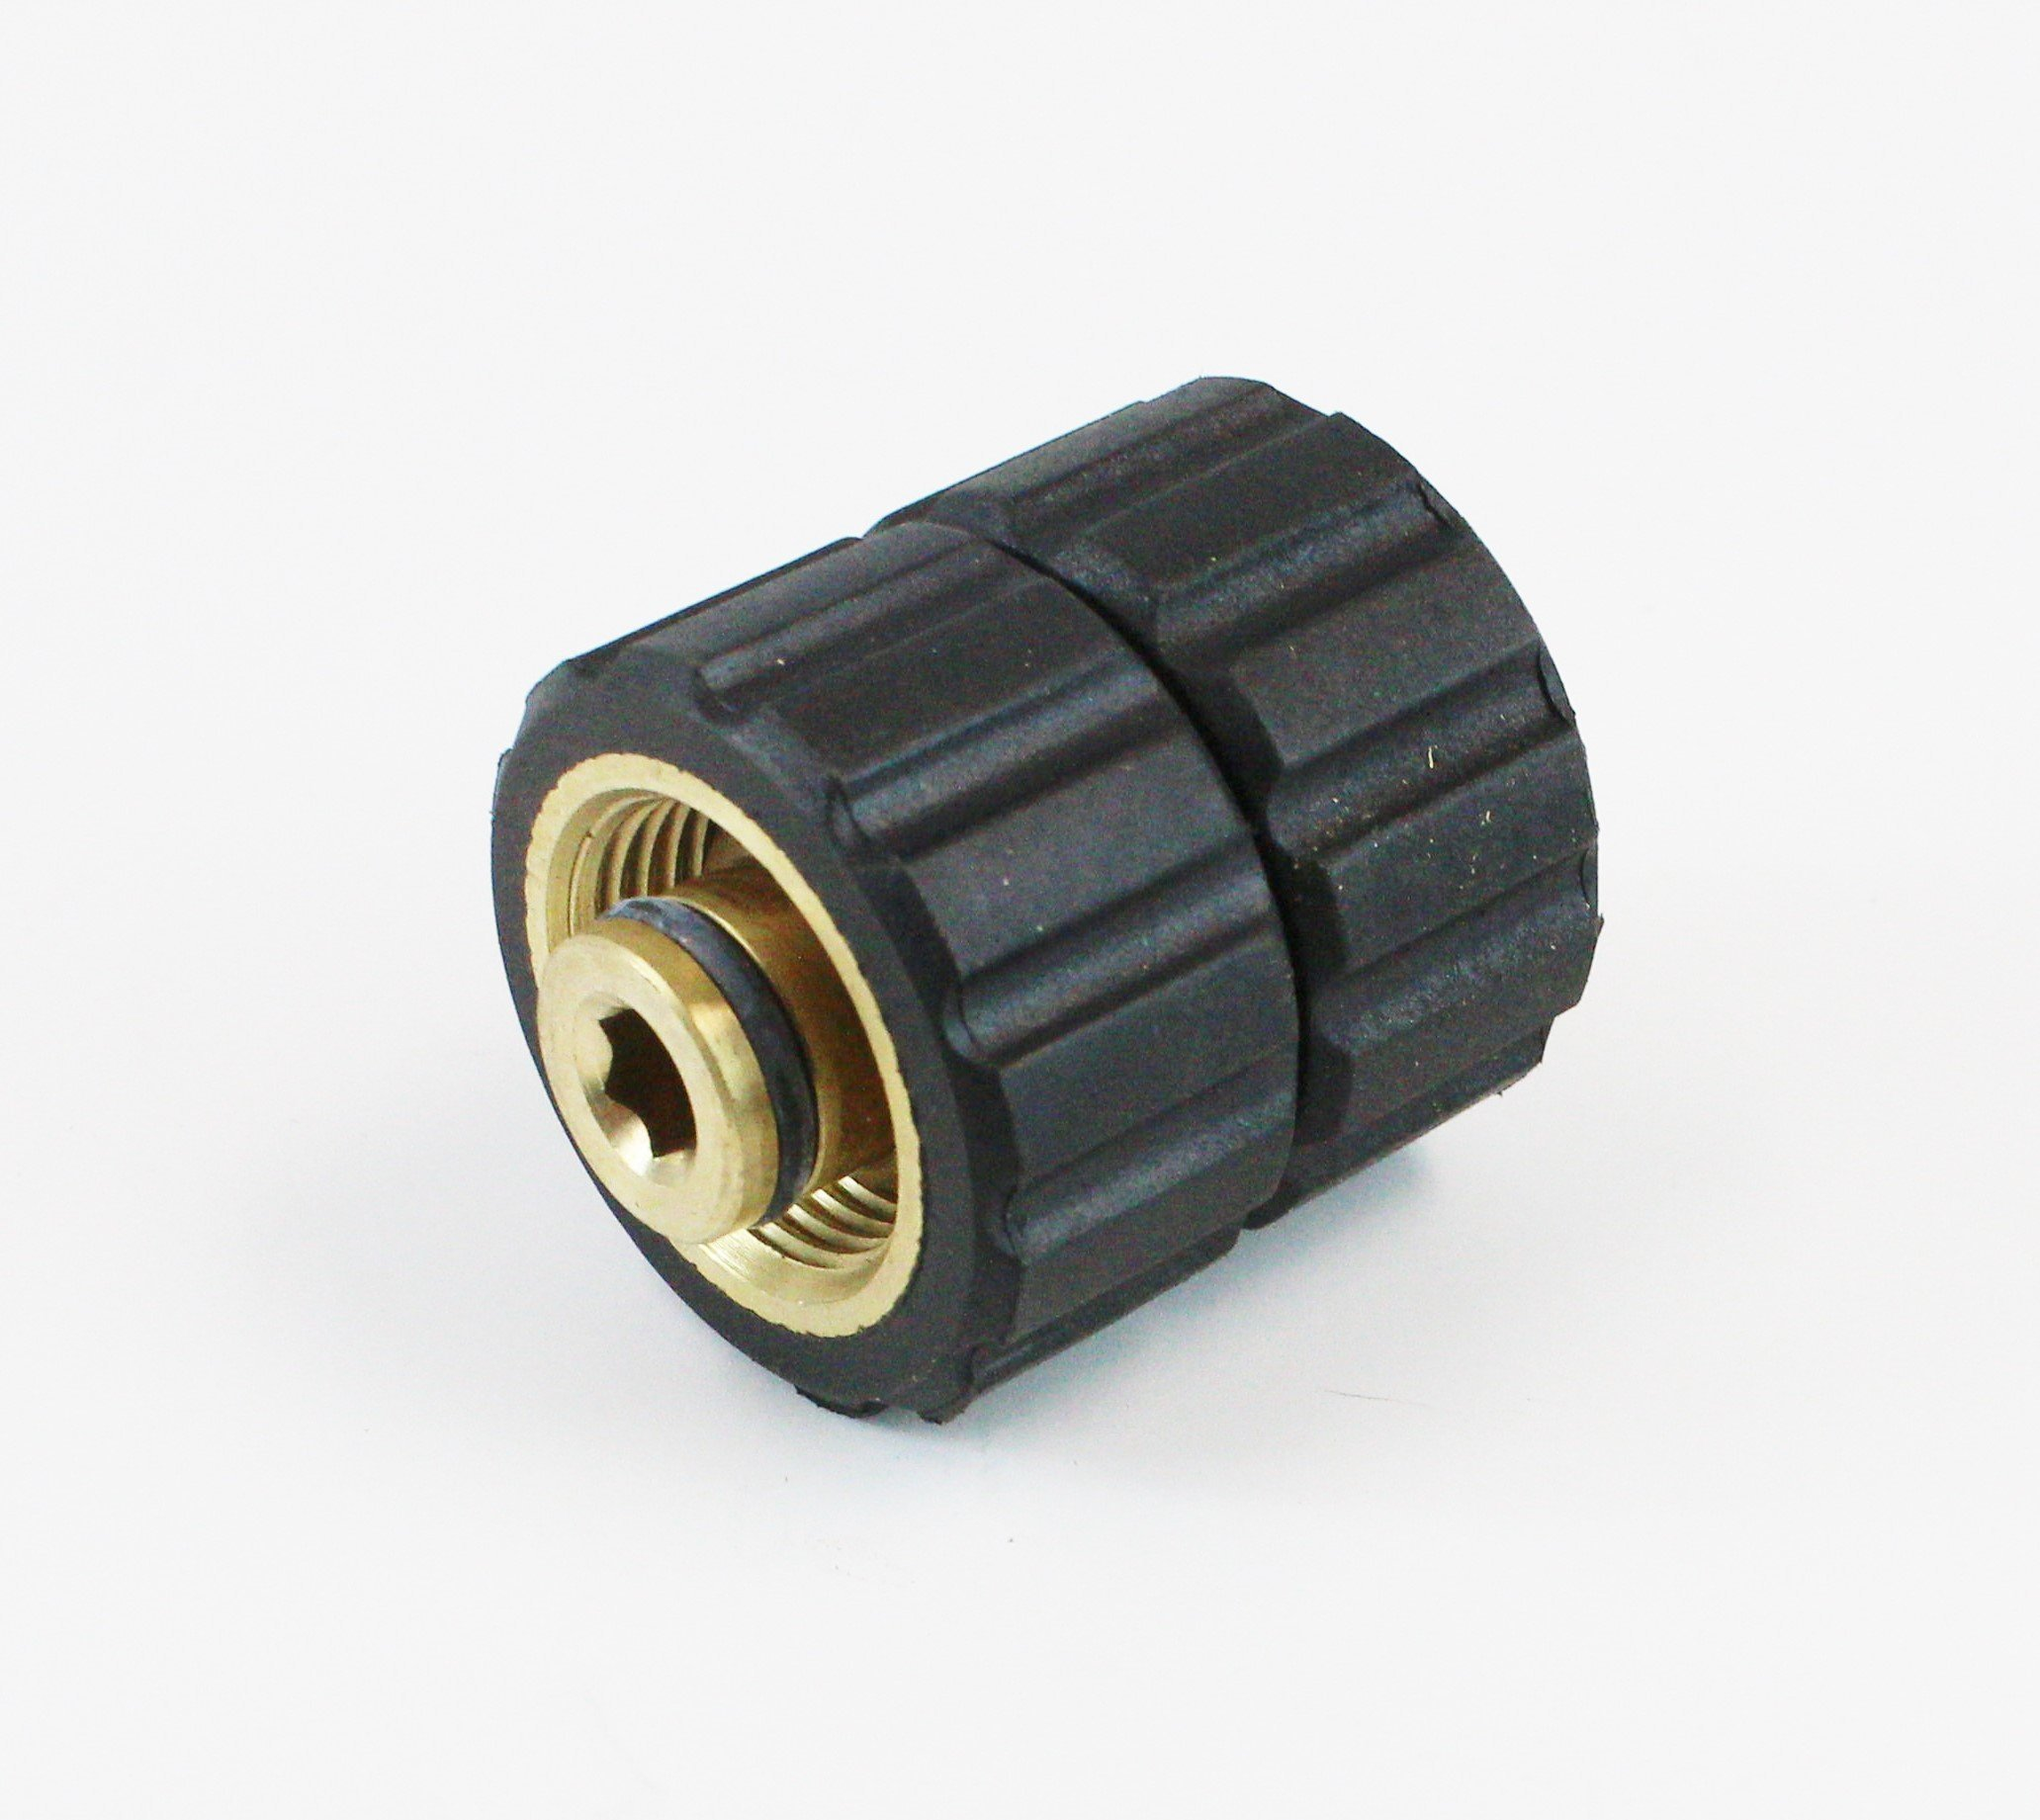 Sellerocity Brand Pressure Washer Twist Type Quick Connector Coupler 22mm Female, Both Ends, Replaces General D10041 Mi-T-M Mitm 331212 by Sellerocity